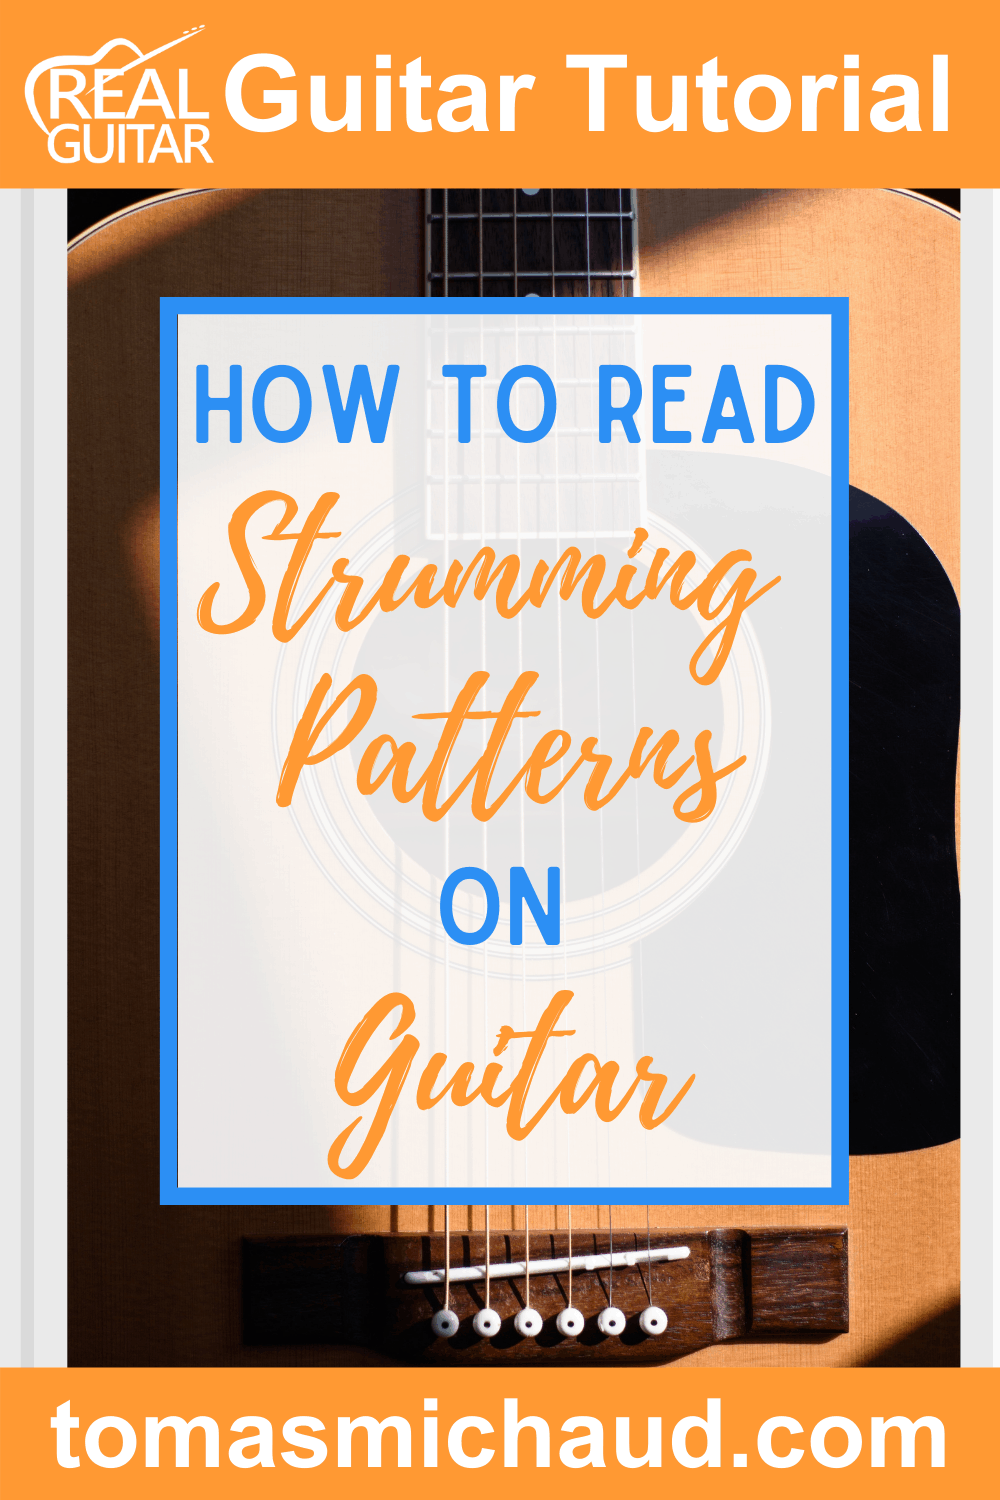 How to Read Strumming Patterns on Guitar